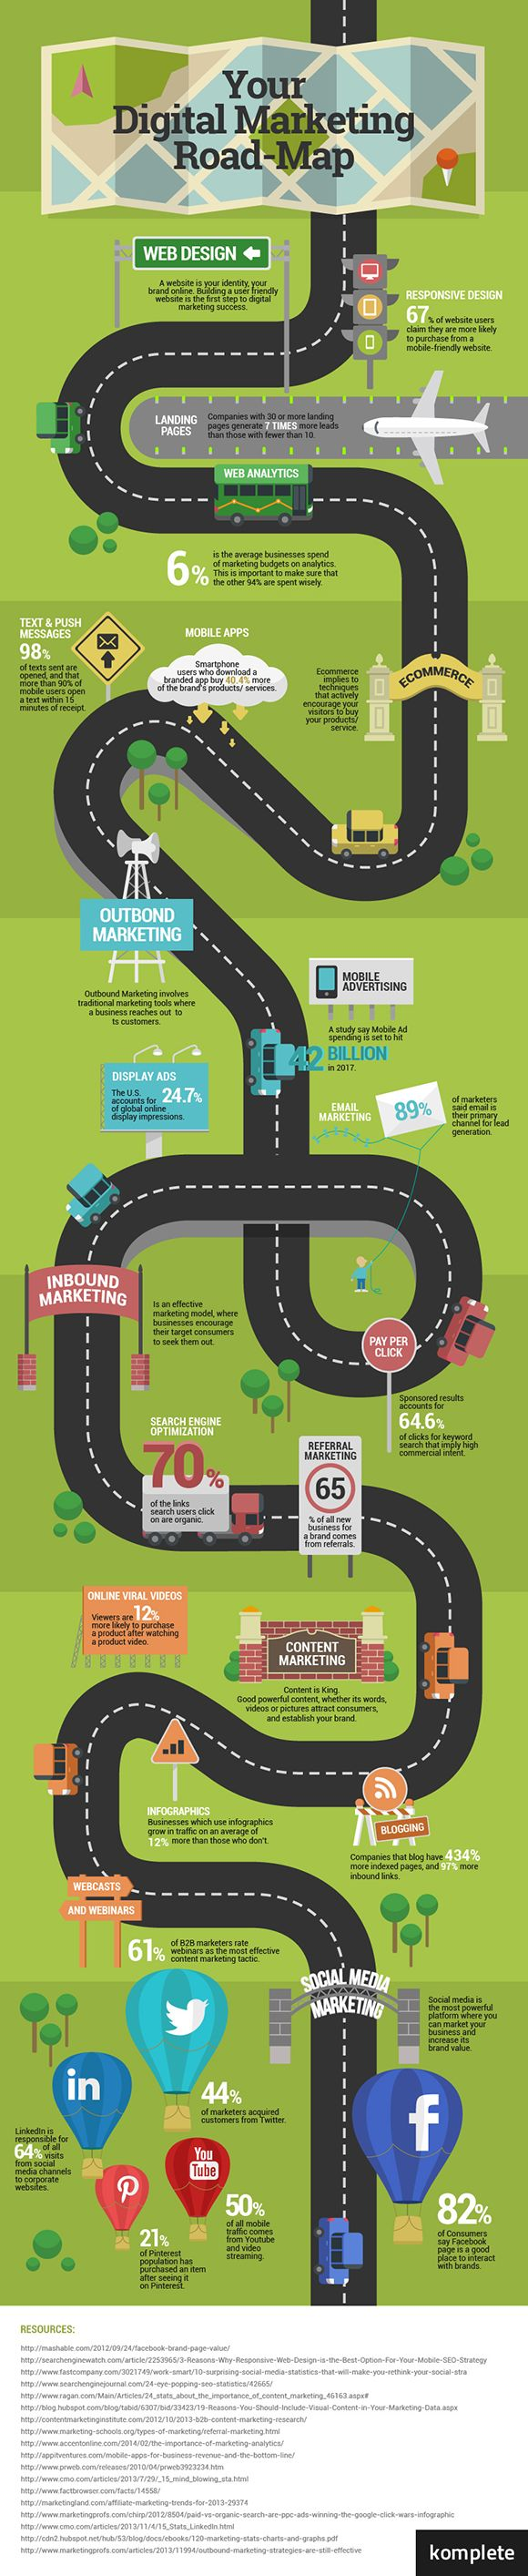 An Informative Digital Marketing Road-Map - Infographic